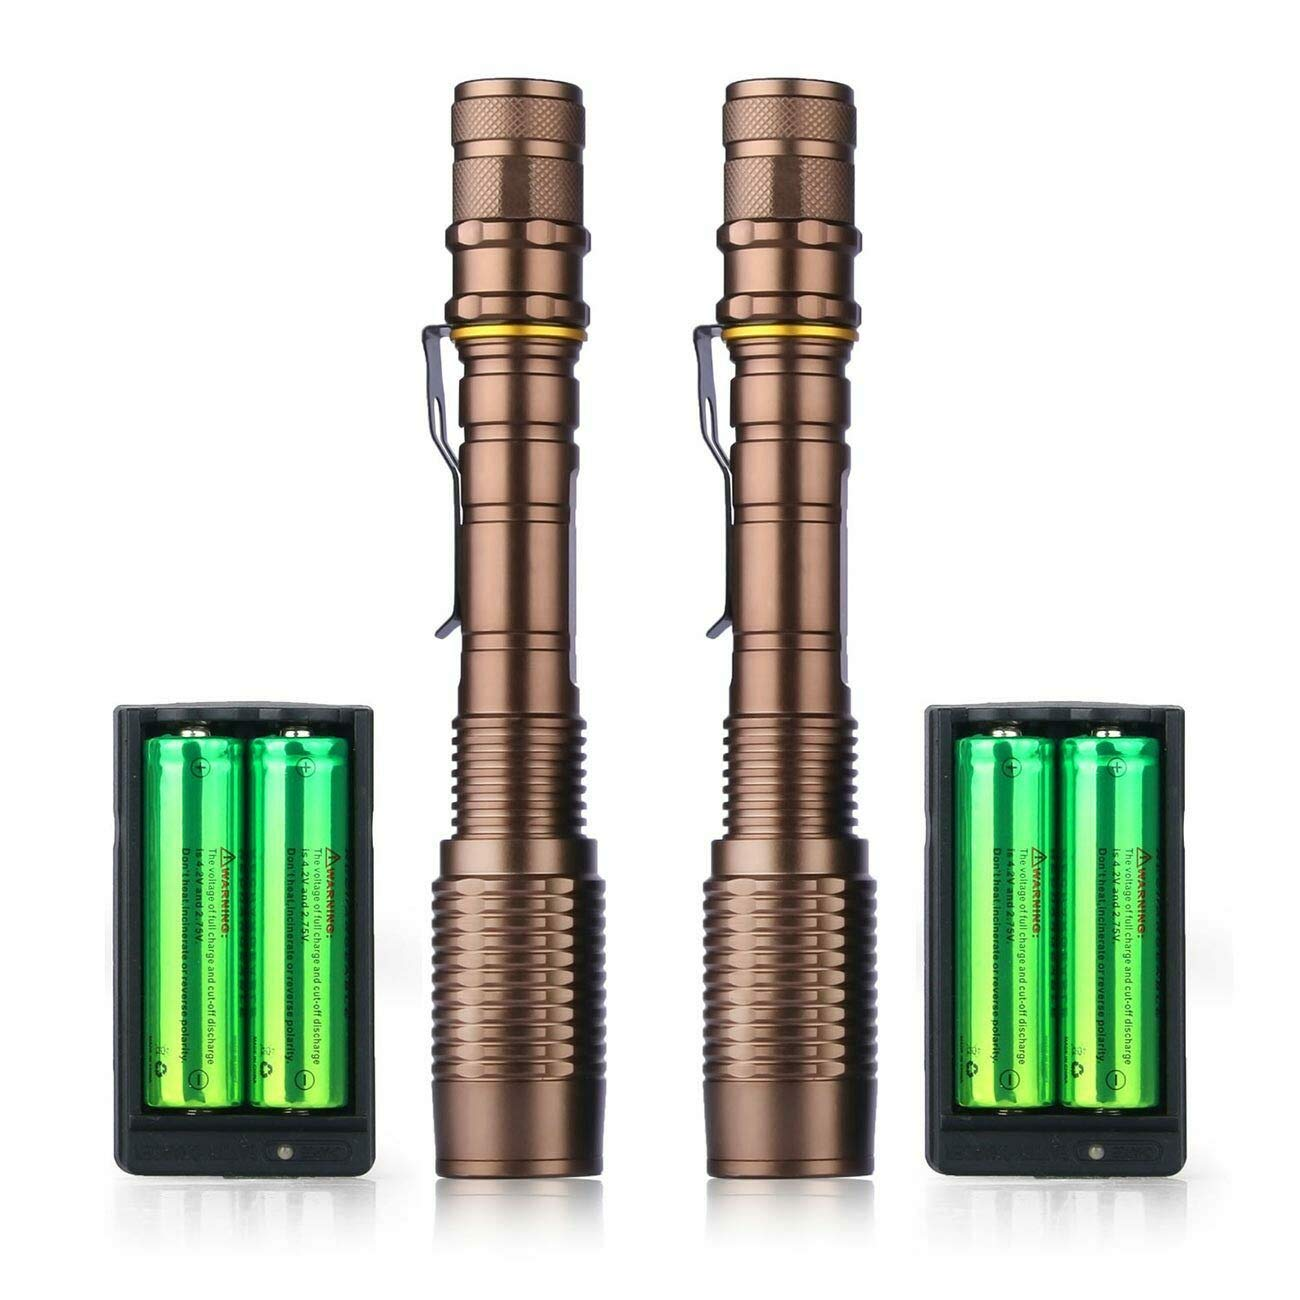 2X Linterna LED Lampara Recargable Súper Luminosa Resistente ...